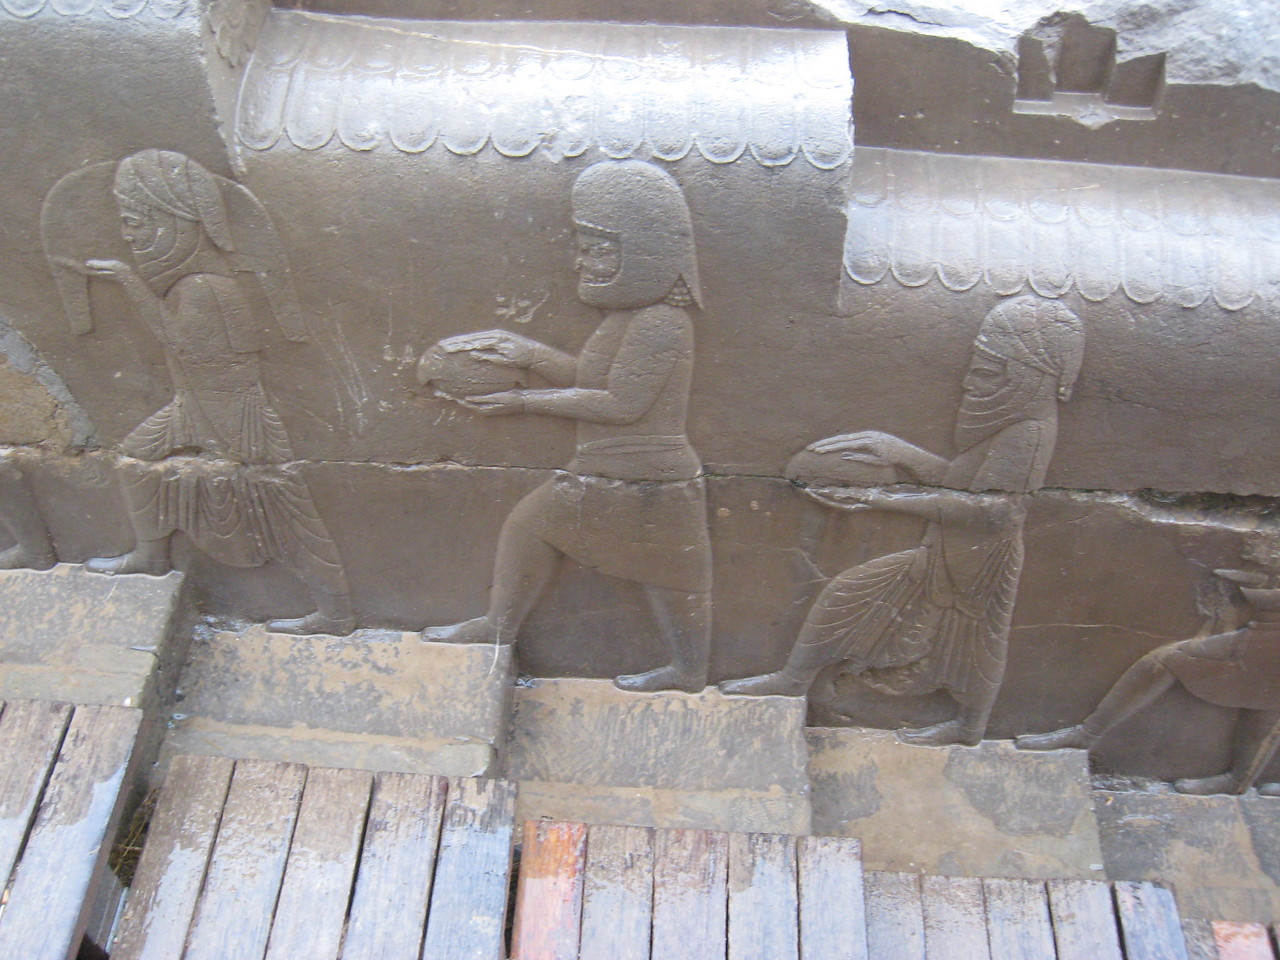 Part of the stone reliefs on a stair case in Persepolis.